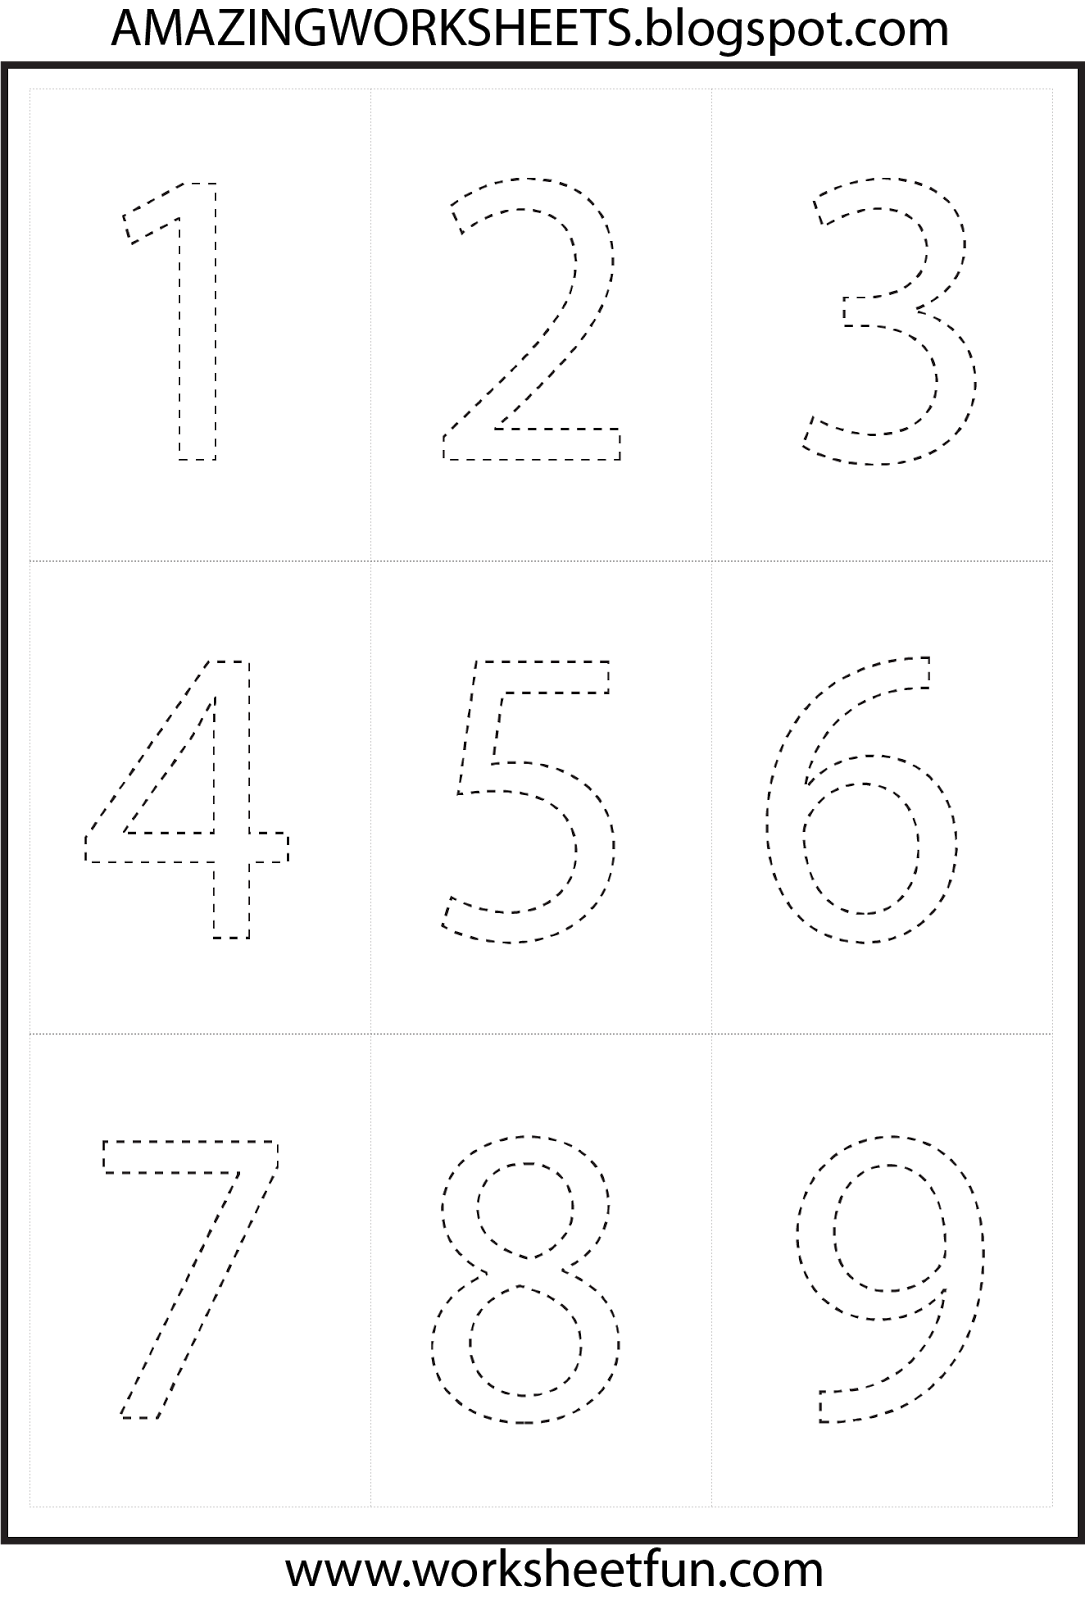 Download – Coloring Number 1, 2, 3, 4, 5, 6, 7, 8, 9 And 10 ...